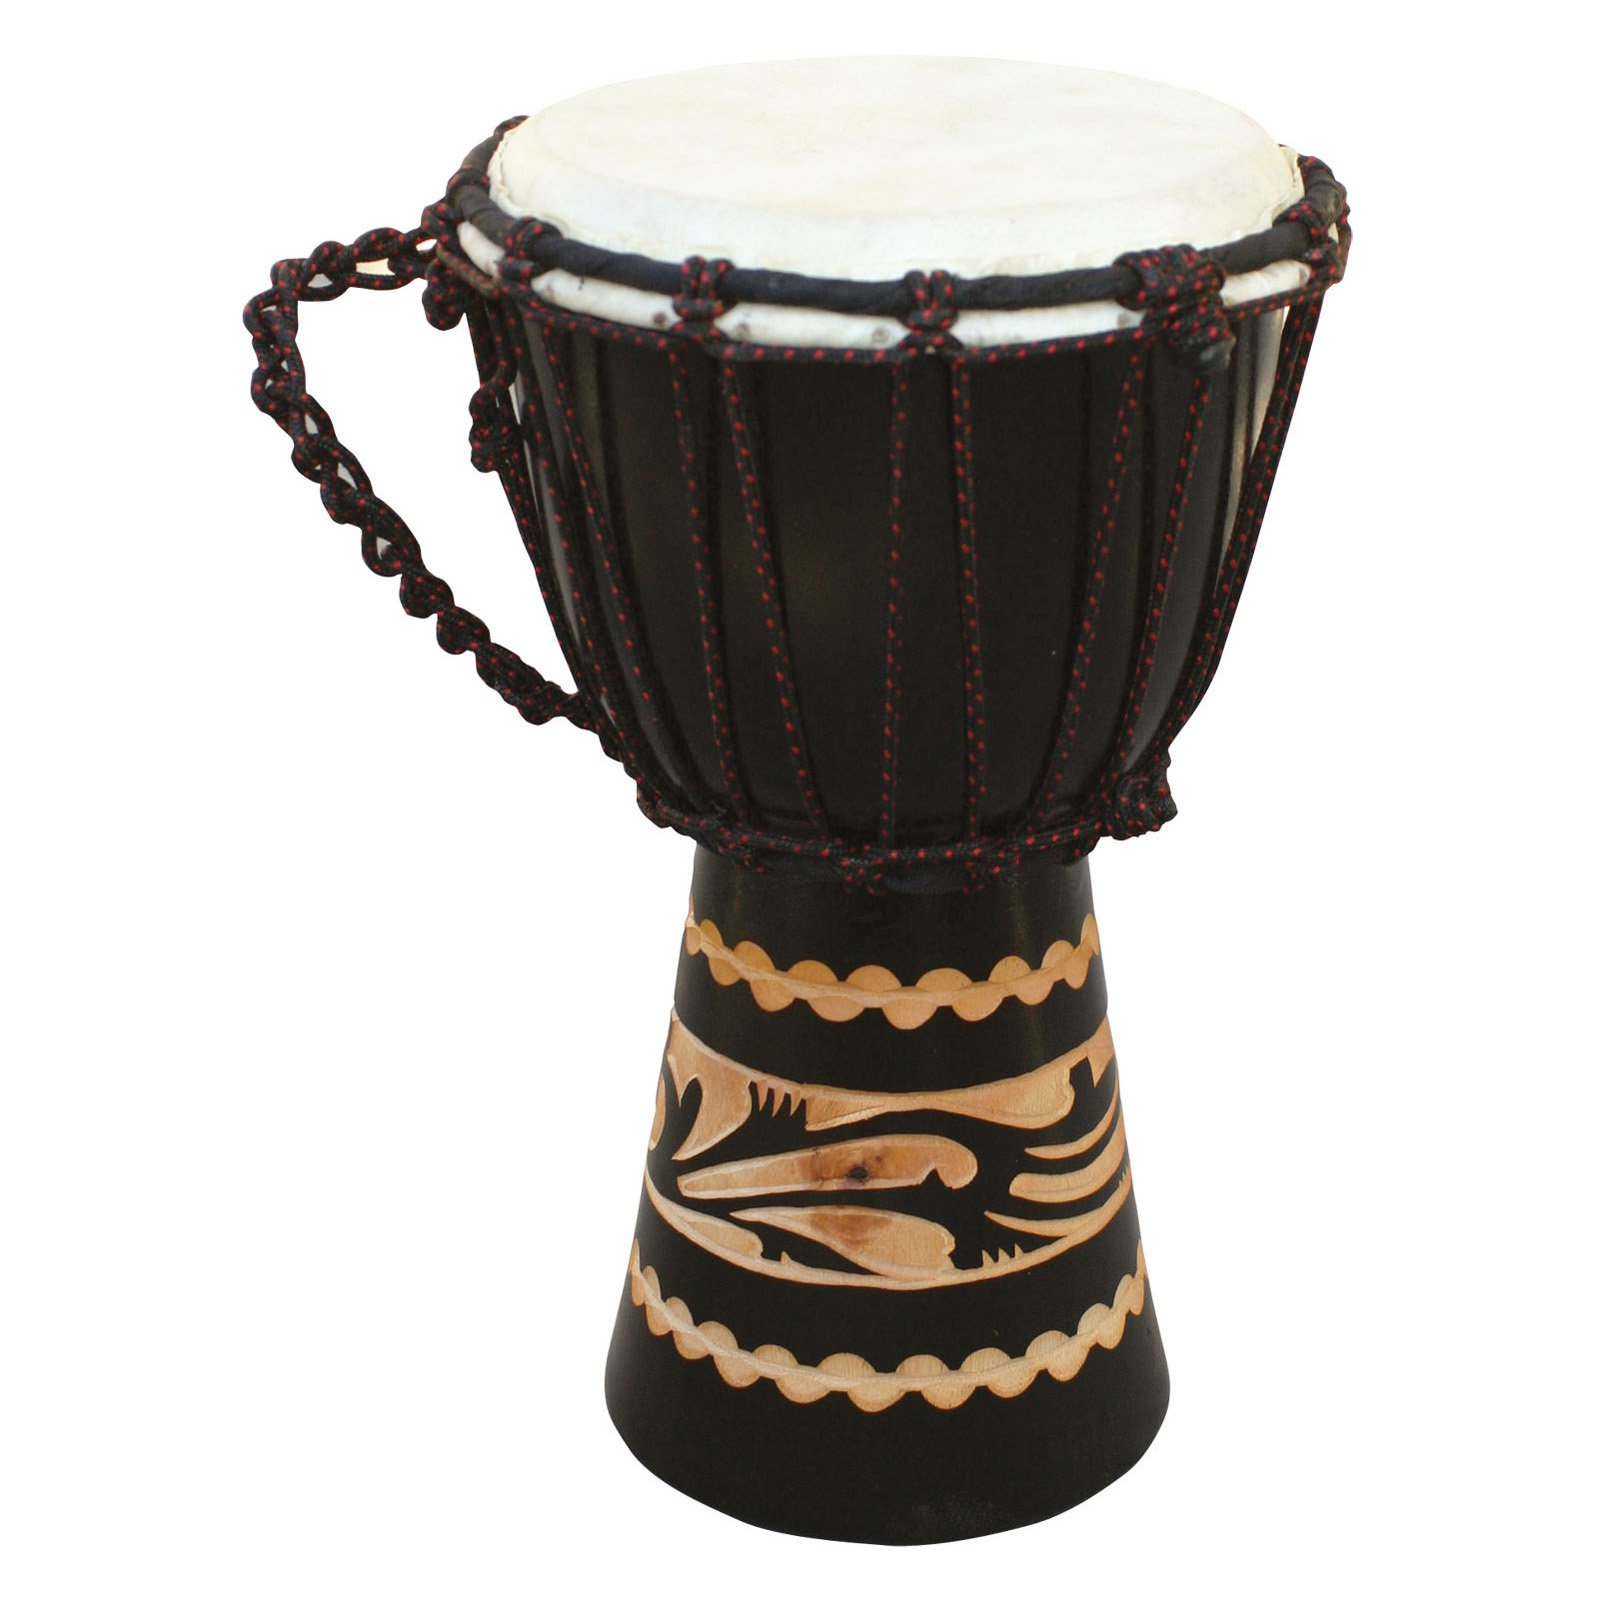 X8 Drums Kalimantan Djembe Drum with Tote Bag